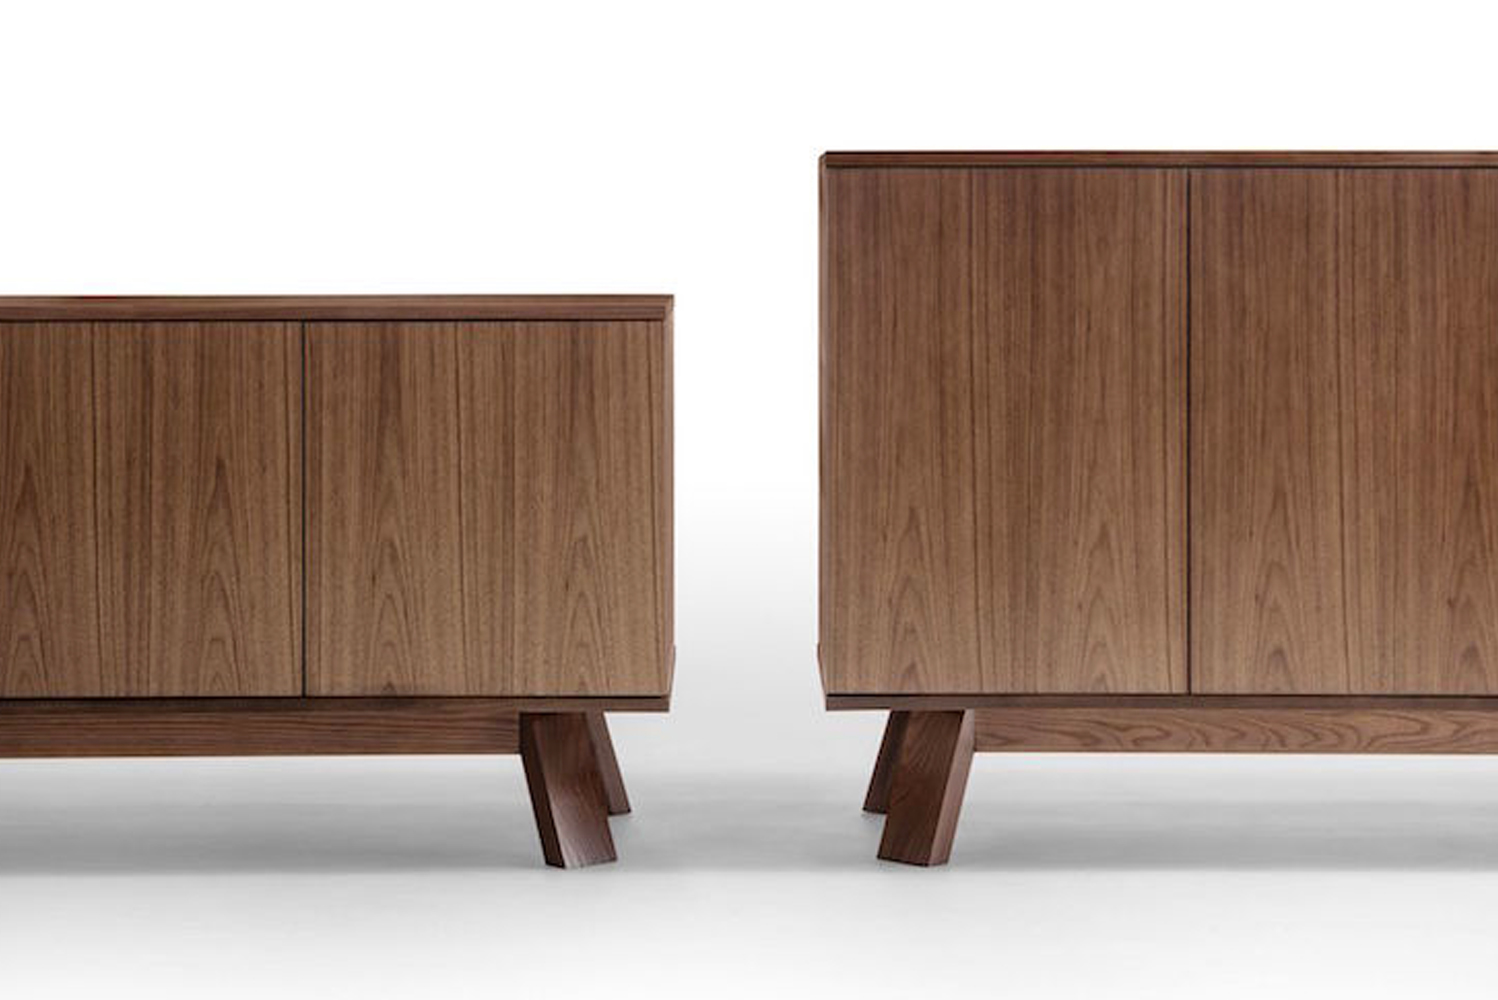 Introducing Saranac, the latest collection by Mitchell Bakker of IDa Design for office furniture manufacturer Gunlocke.